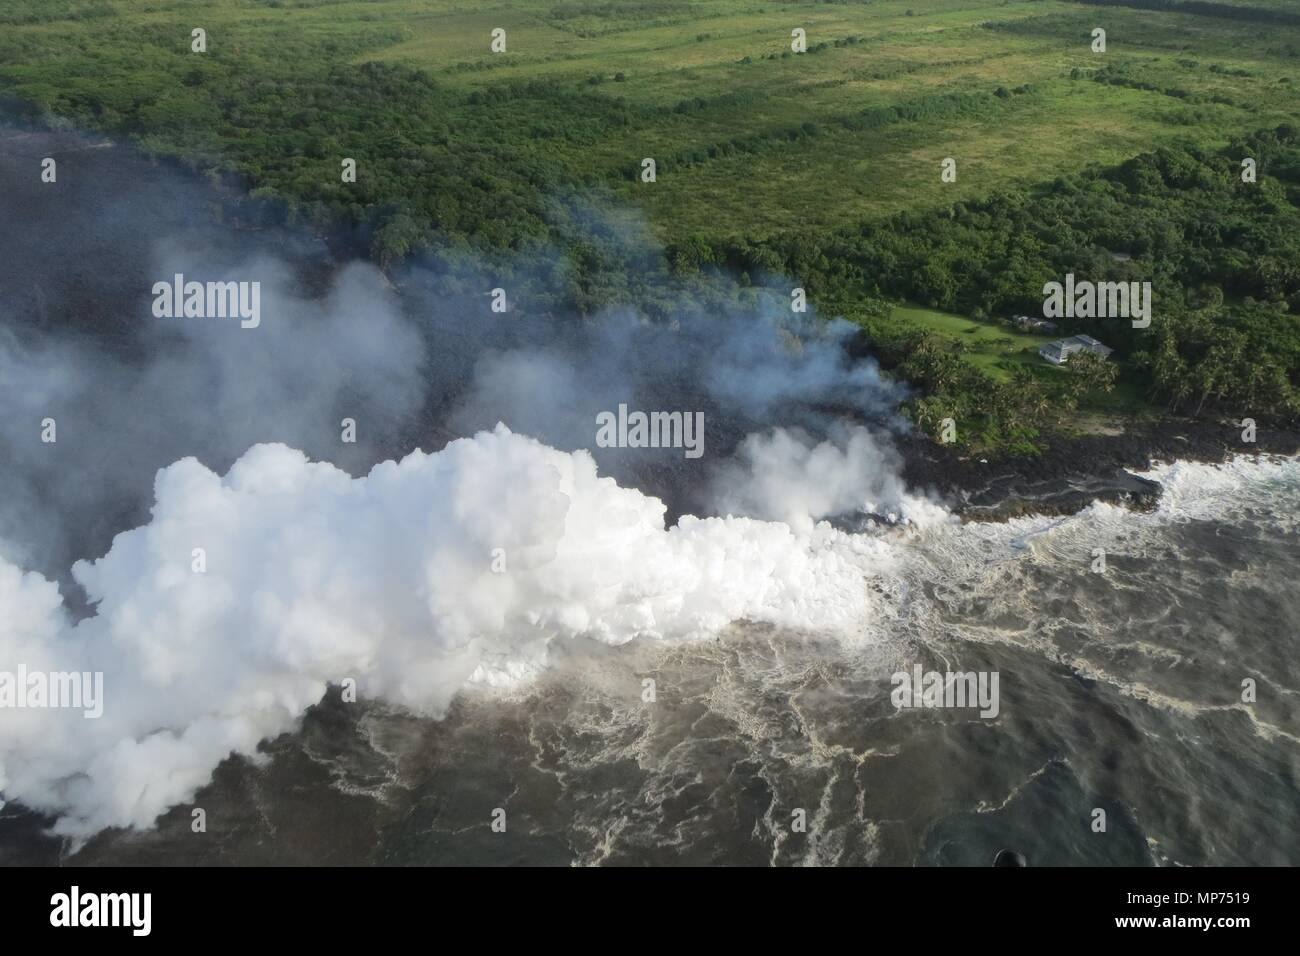 Hawaii, USA. 20th May 2018. Lava and poisonous sulfur dioxide plumes rise from fissure 20 as the molten magma reaches the ocean from the eruption of the Kilauea volcano May 20, 2018 in Pahoa, Hawaii. Hot lava entering the ocean creates a dense white plume called 'laze' (short for 'lava haze'). Laze is formed as hot lava boils seawater to dryness. Credit: Planetpix/Alamy Live News - Stock Image